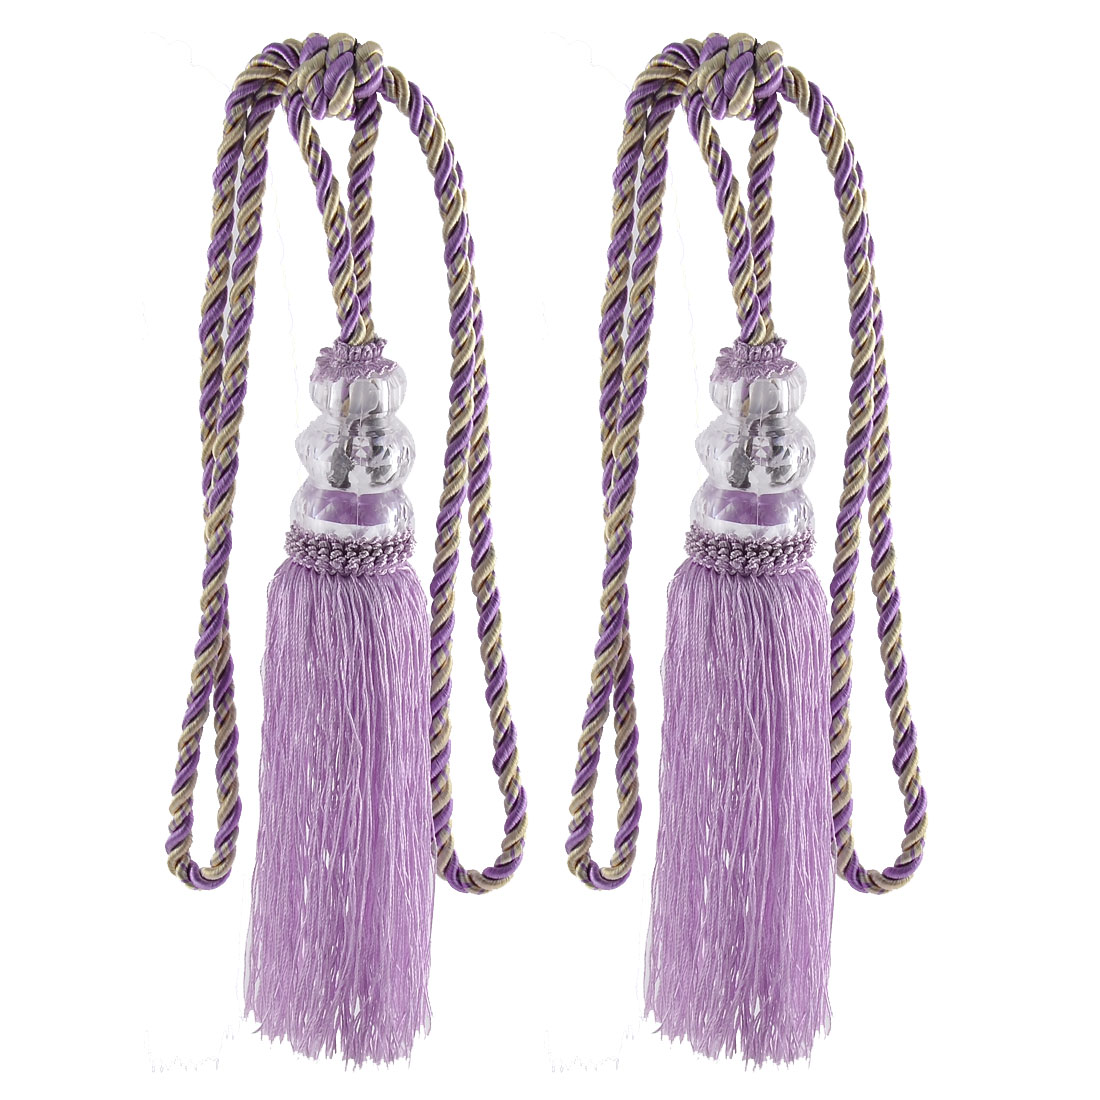 Home Plastic Bead Drapery Curtain Decoration Tassel Fringe Detail Tieback Rope Cord Light Purple Pair